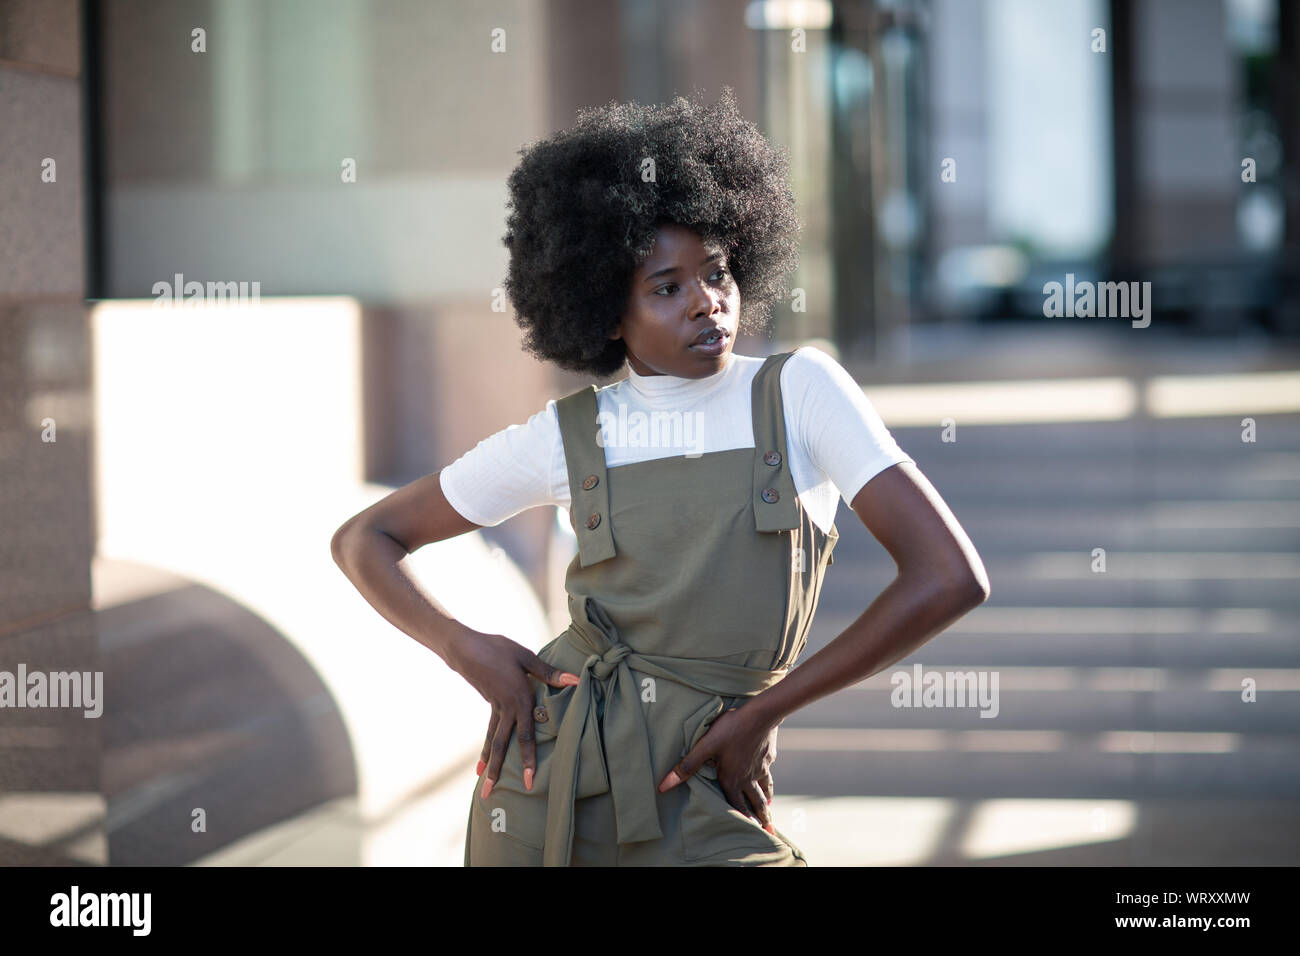 Beautiful African American girl with curly hair, fashionable overalls, and white turtleneck. Stock Photo